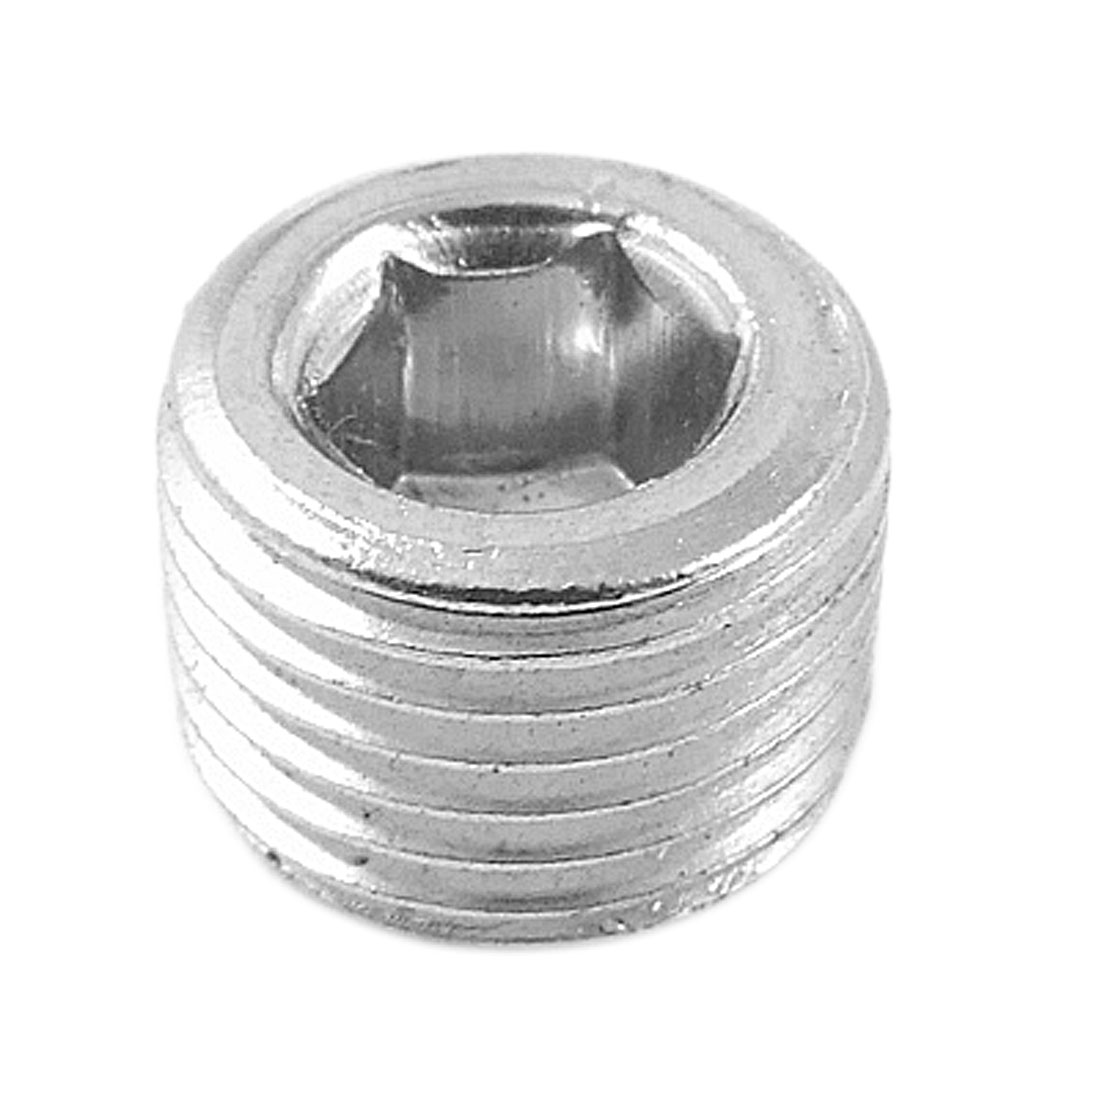 "1/8"" Thread Diameter Metal Internal Hex Head Socket Pipe Plug"